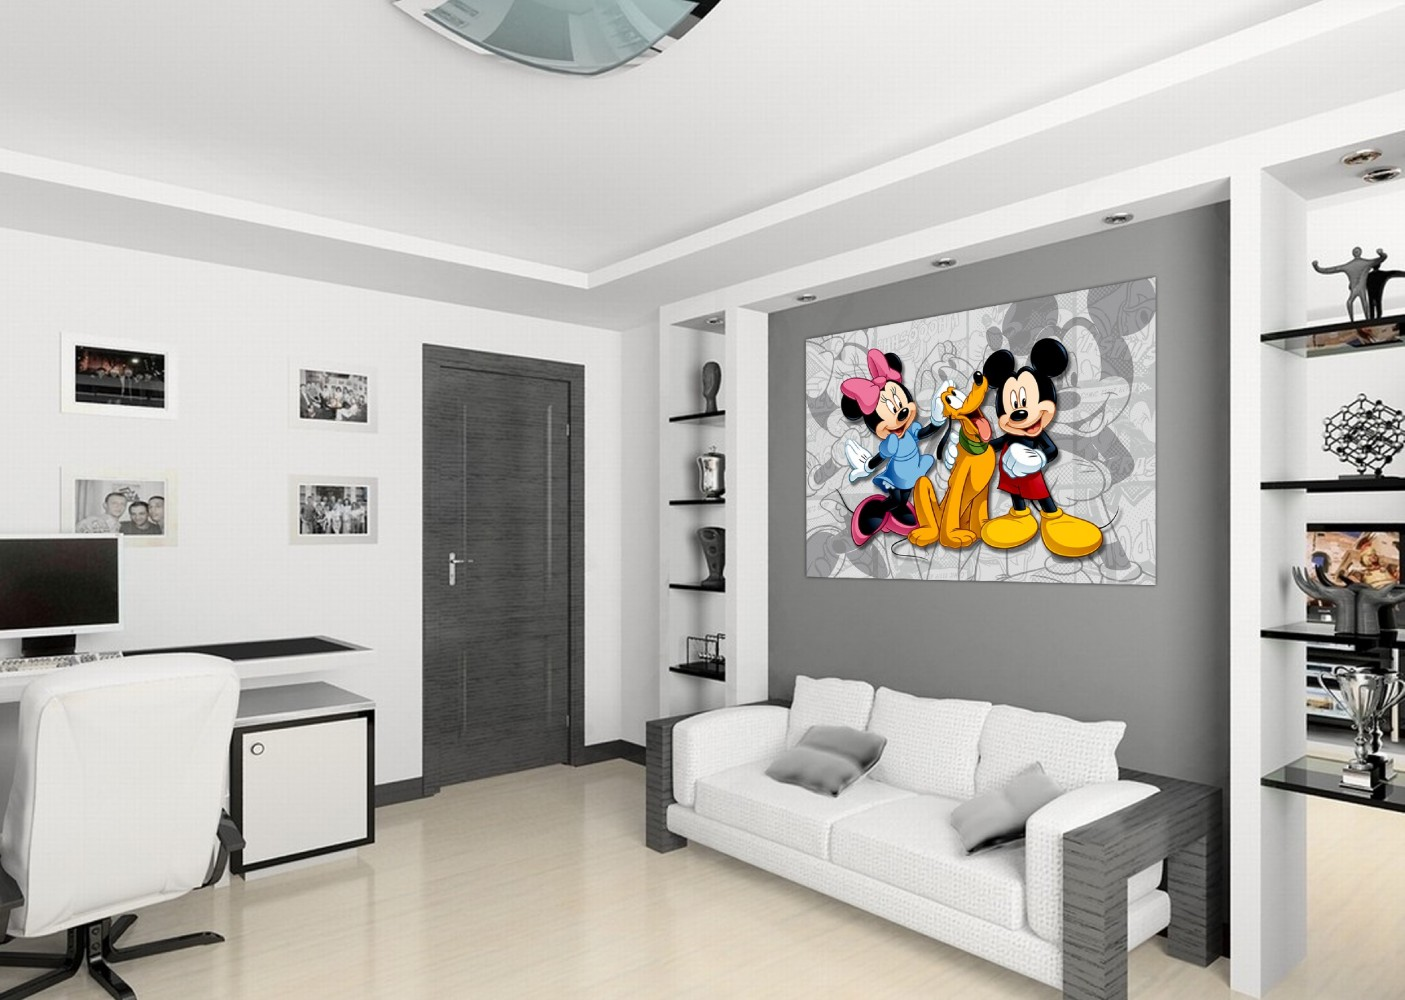 xxl poster fototapete tapete disney micky mouse minni. Black Bedroom Furniture Sets. Home Design Ideas